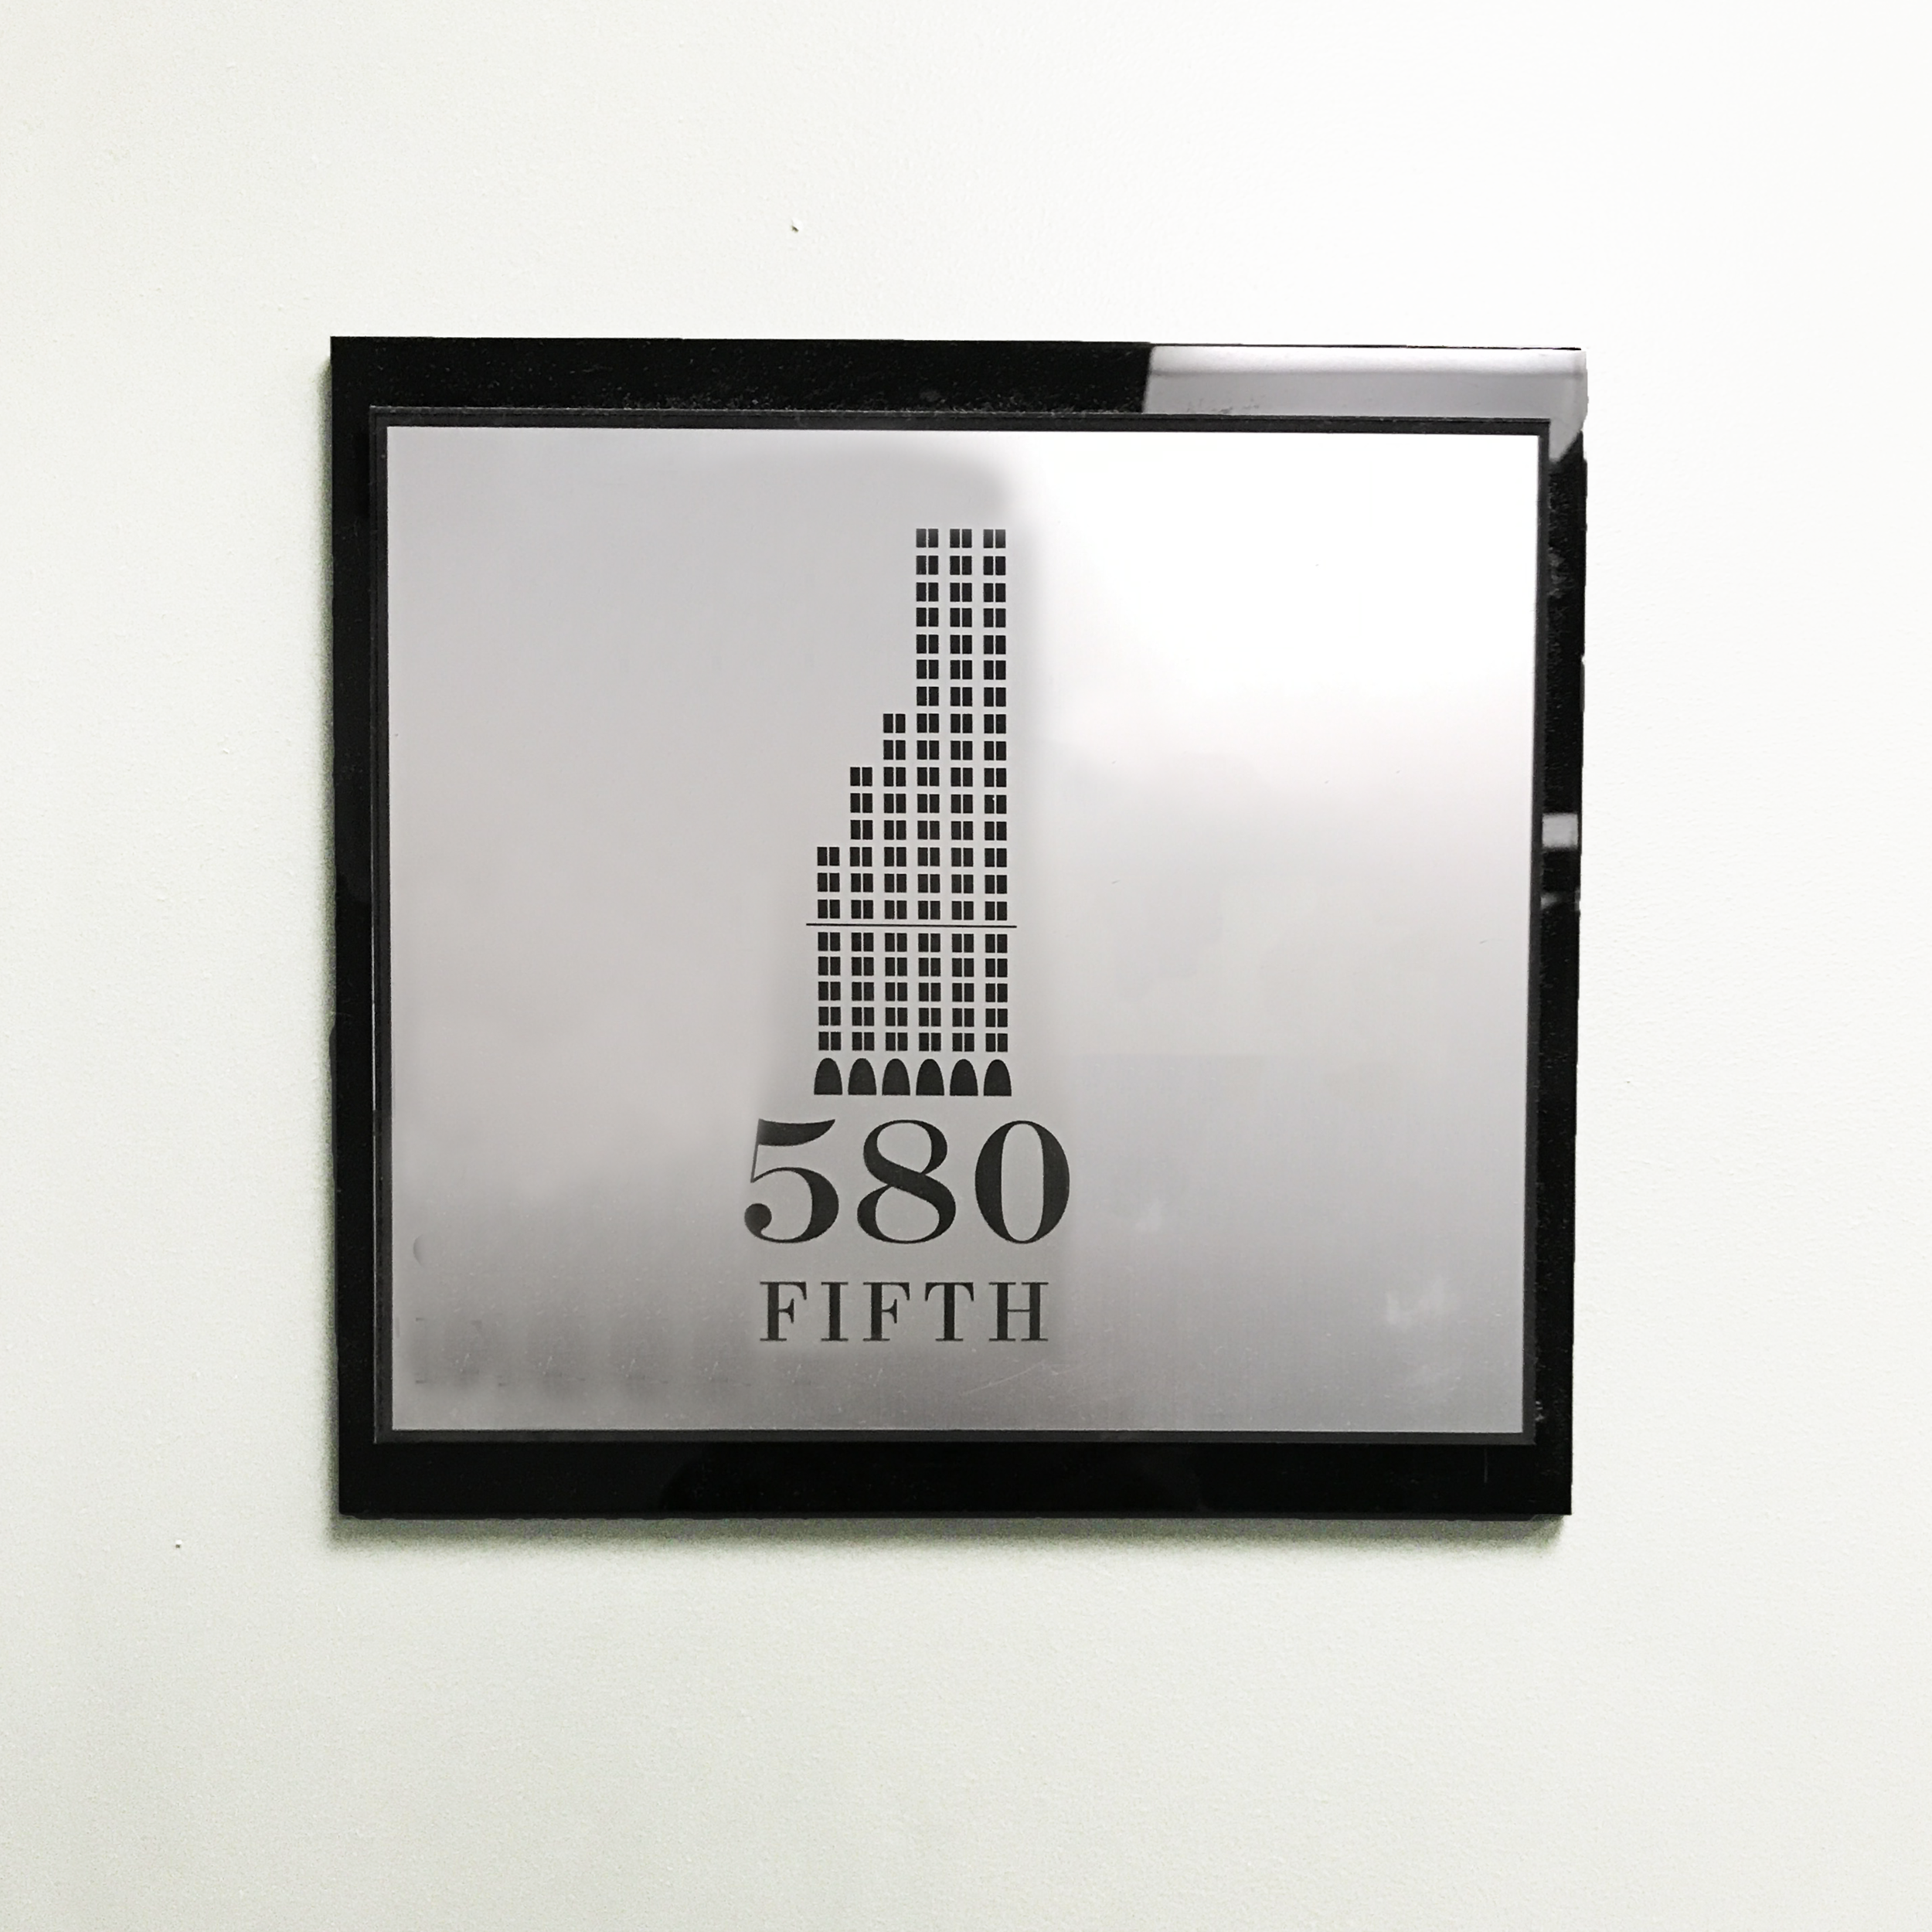 580 Fifth